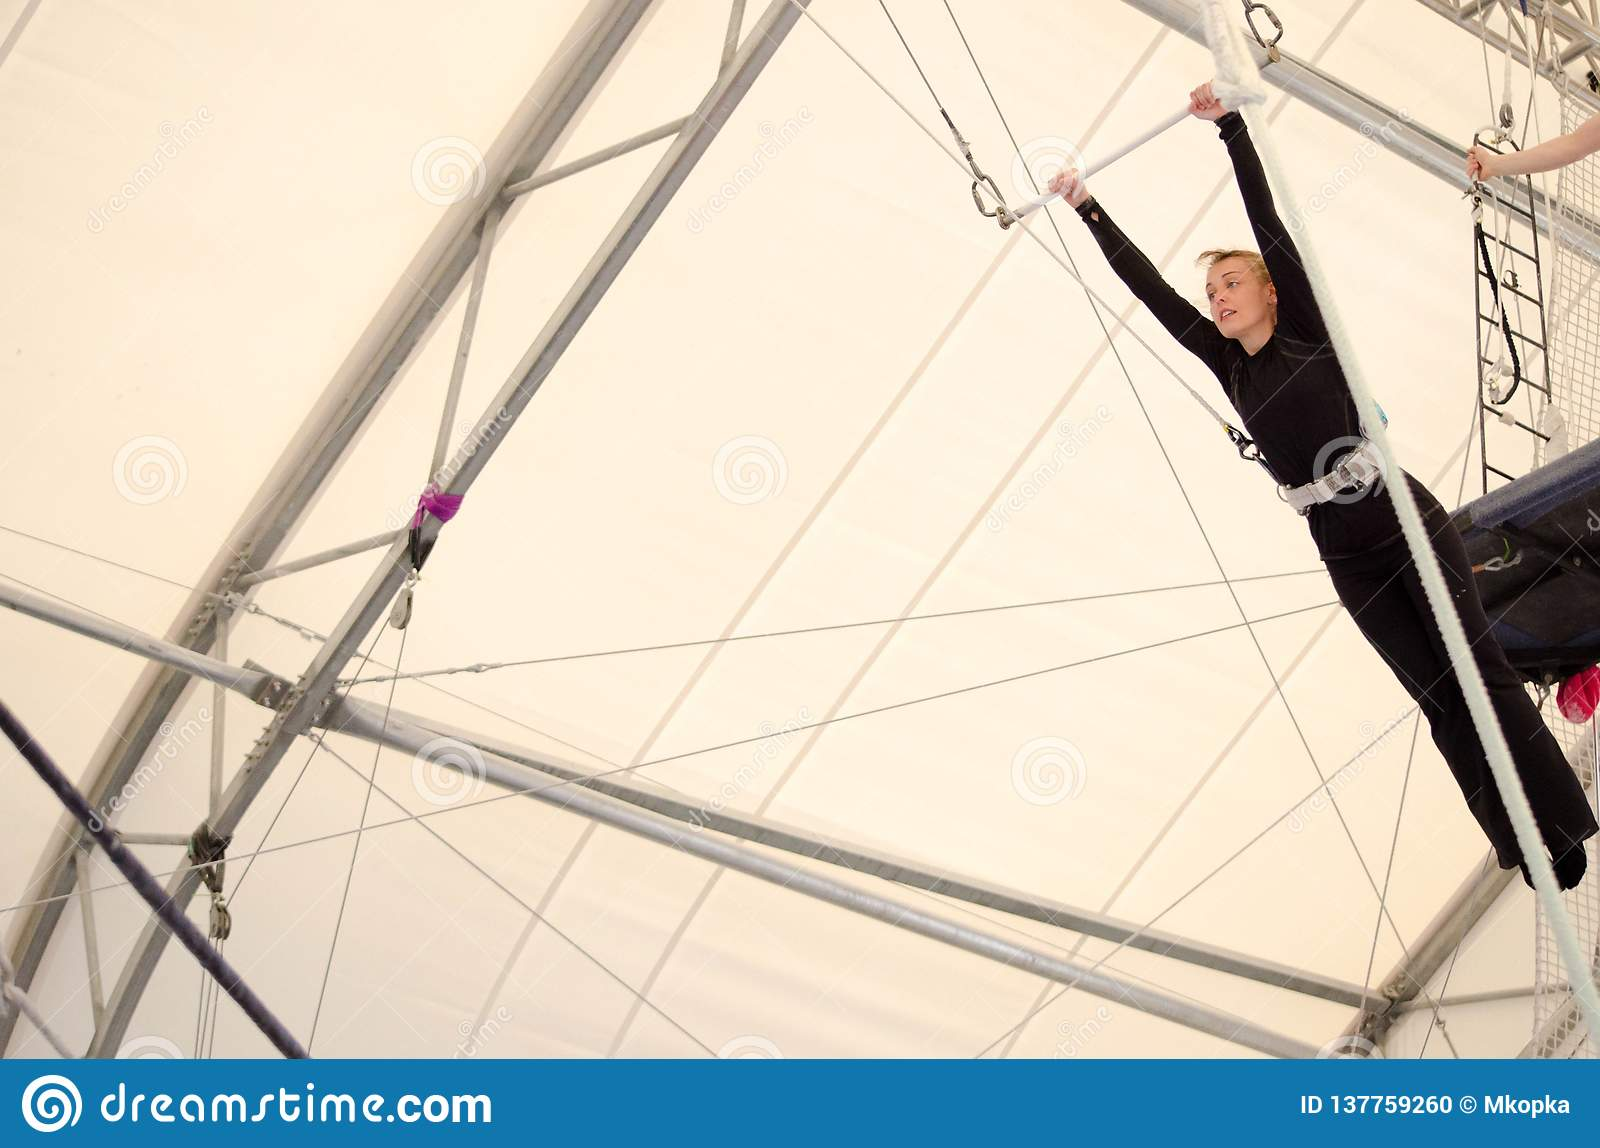 An adult female hangs on a flying trapeze at an indoor gym. The woman is an amateur trapeze artist